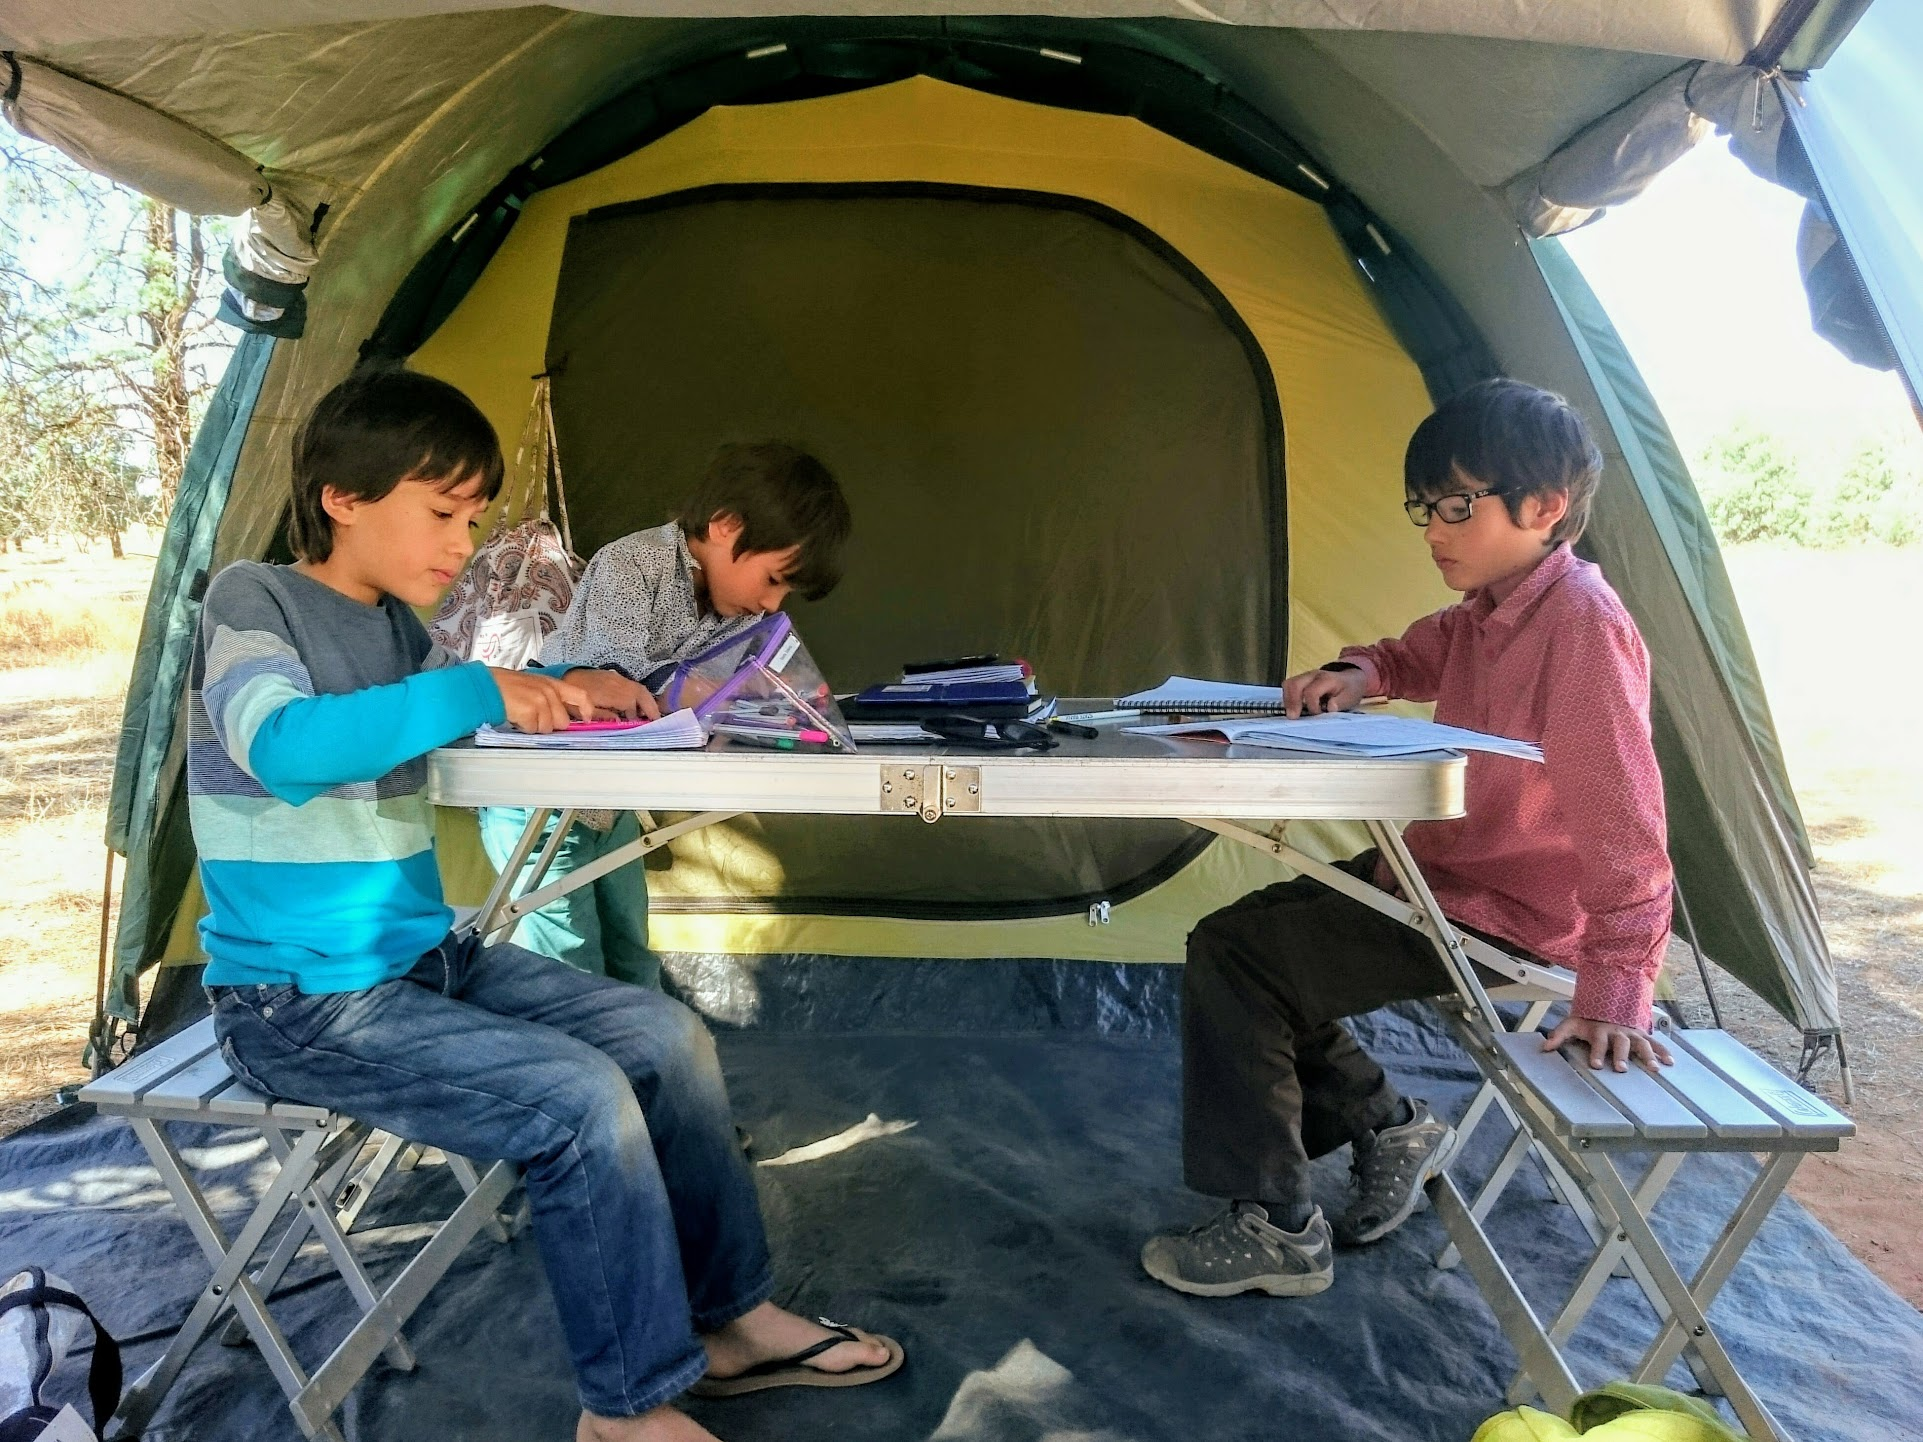 Tent schooling in the Outback.